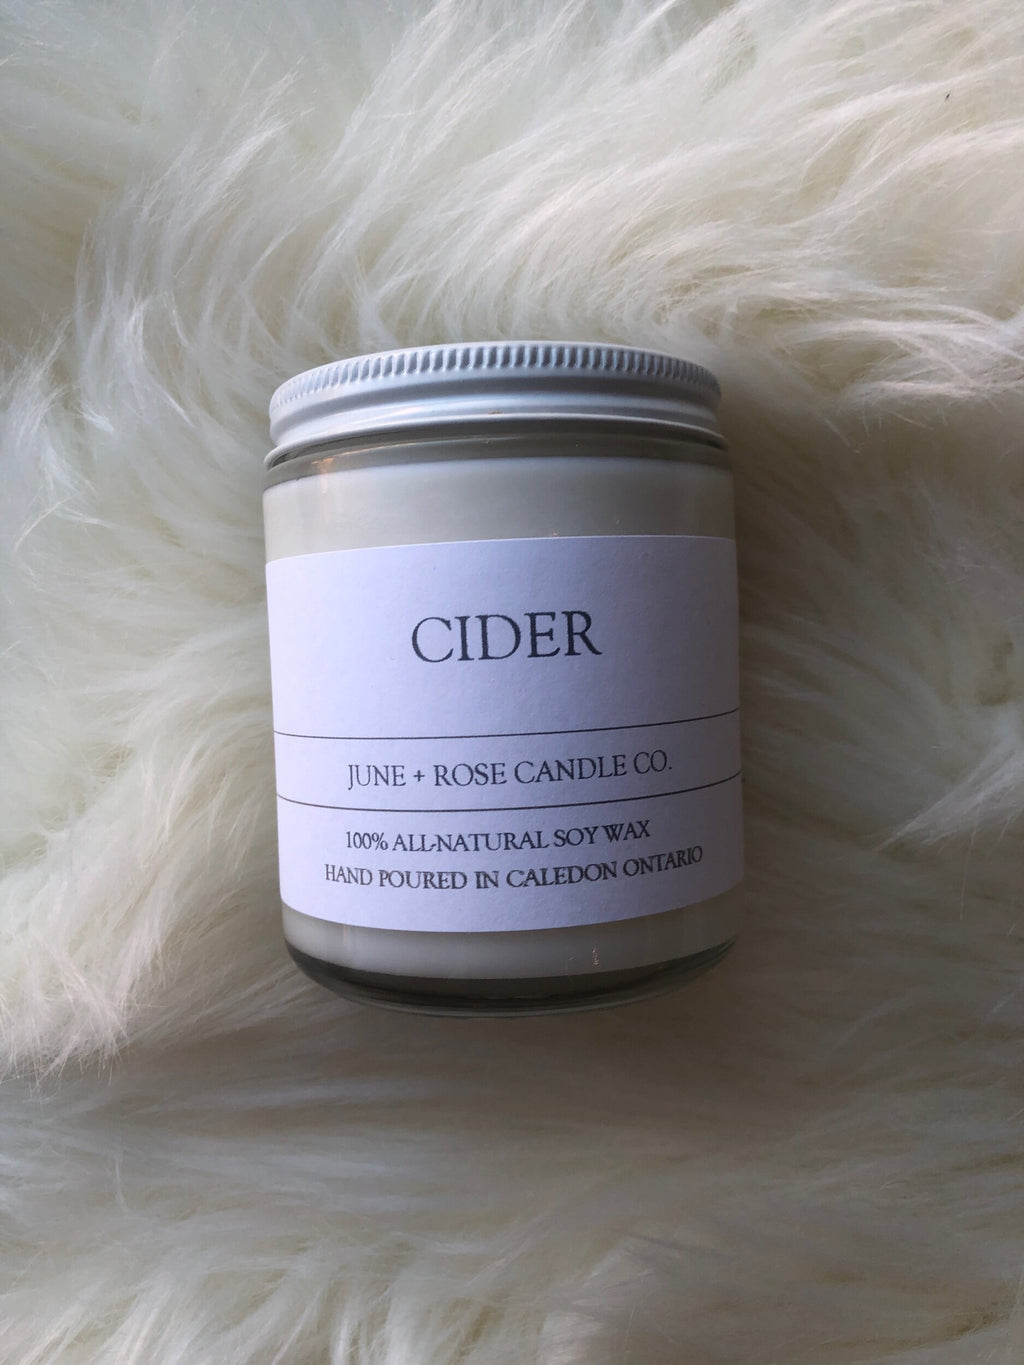 Cider Candle (June+Rose Candle Co)